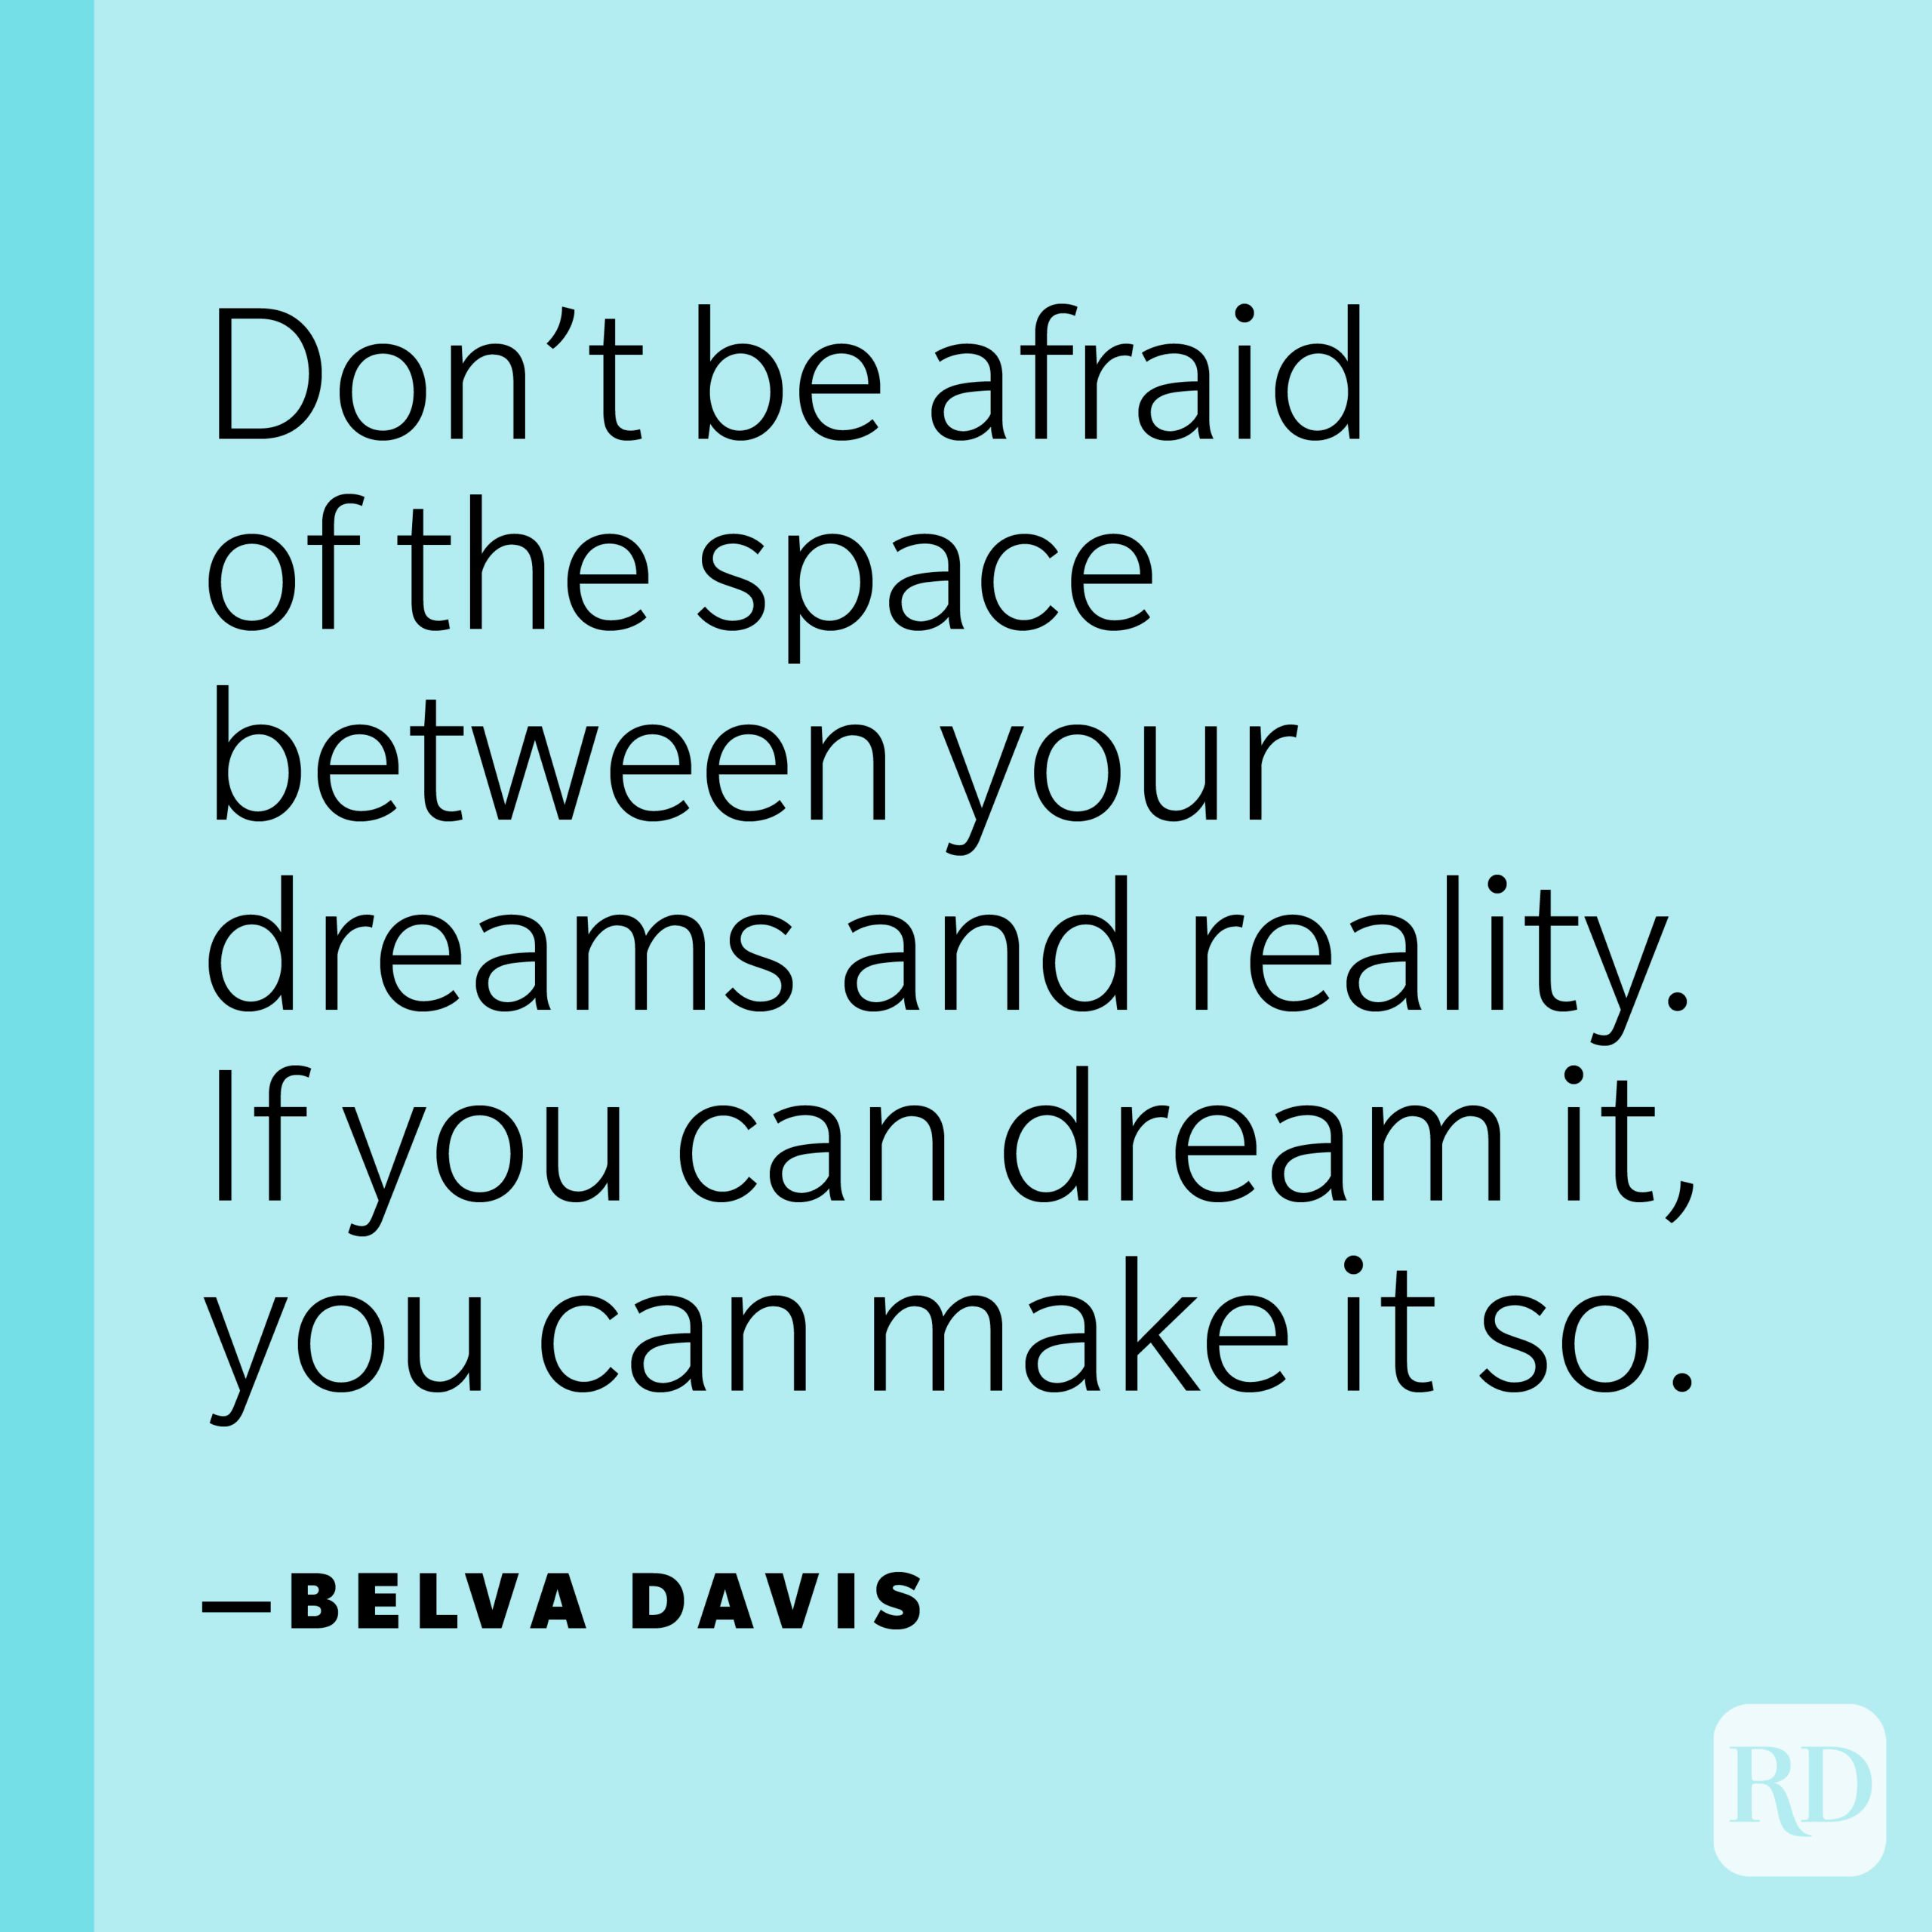 """""""Don't be afraid of the space between your dreams and reality. If you can dream it, you can make it so."""" —Belva Davis."""